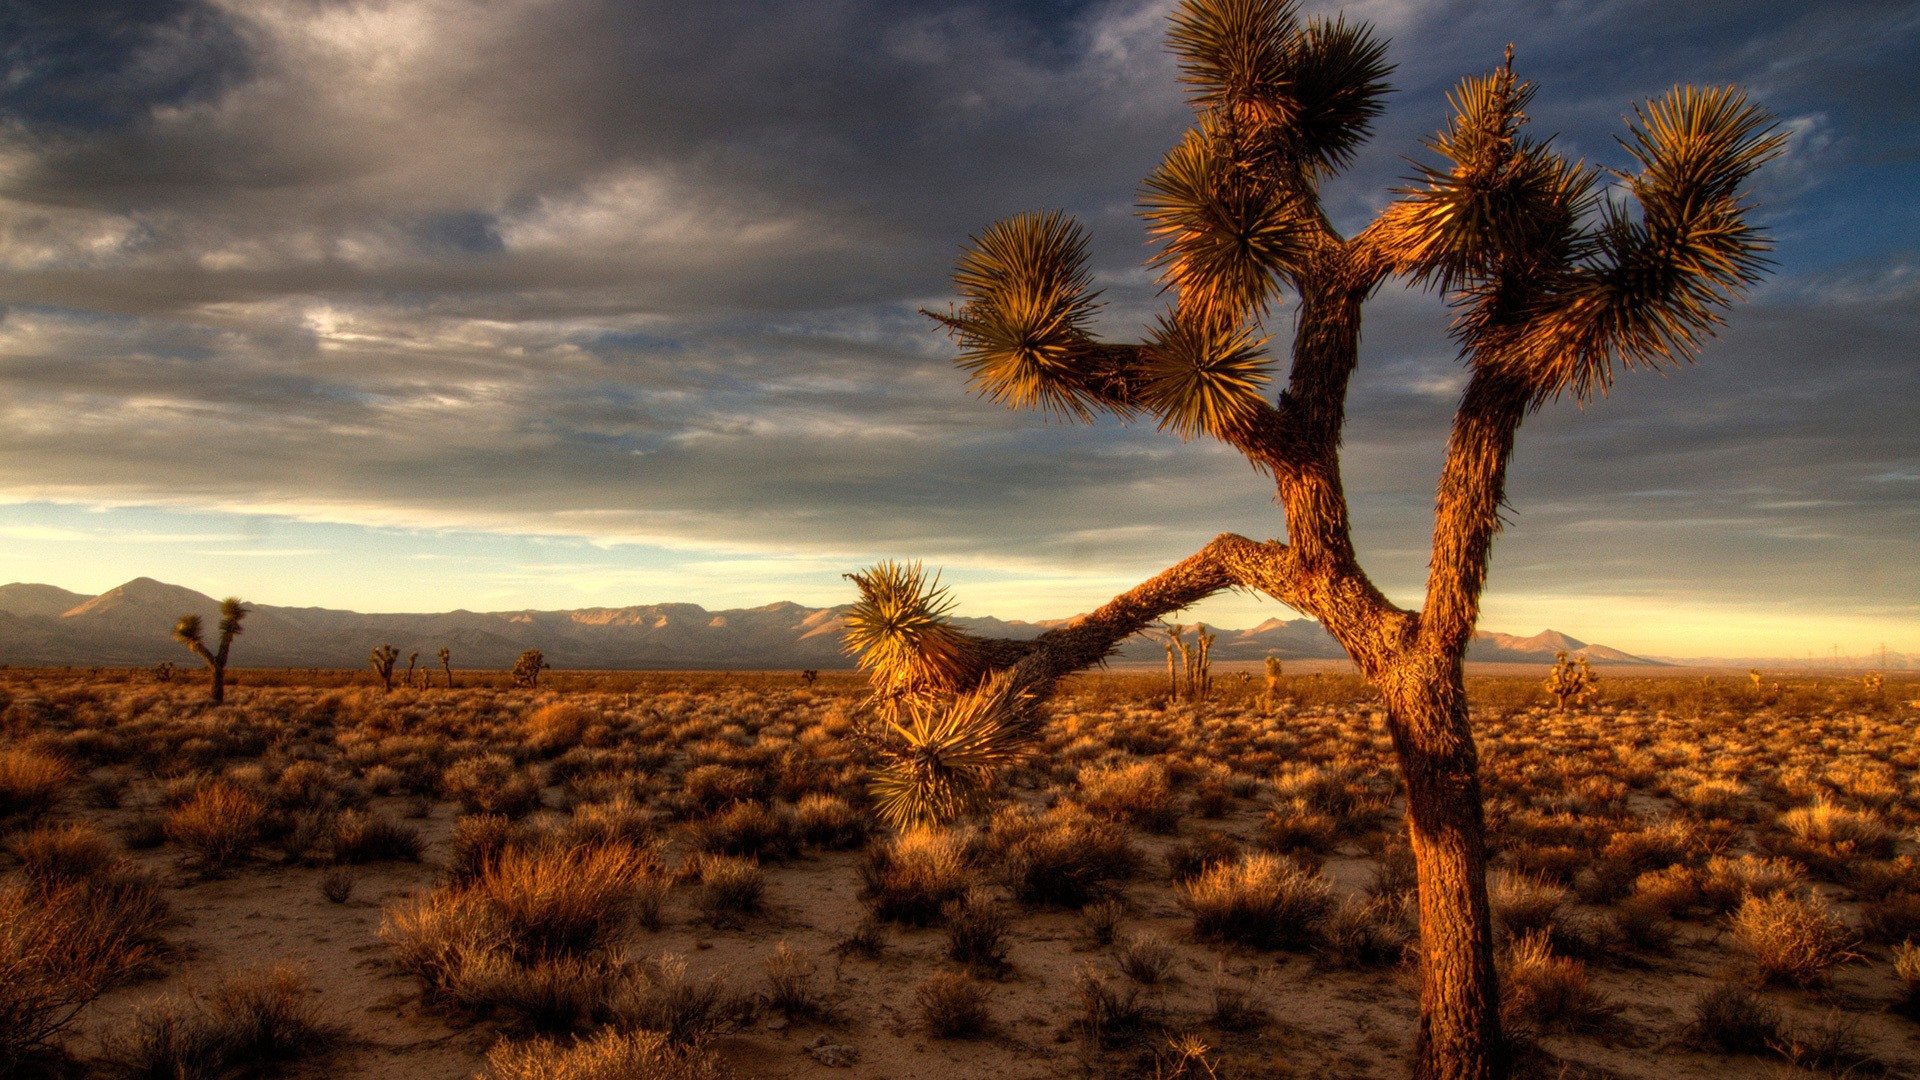 Desert Vegetation Wallpaper